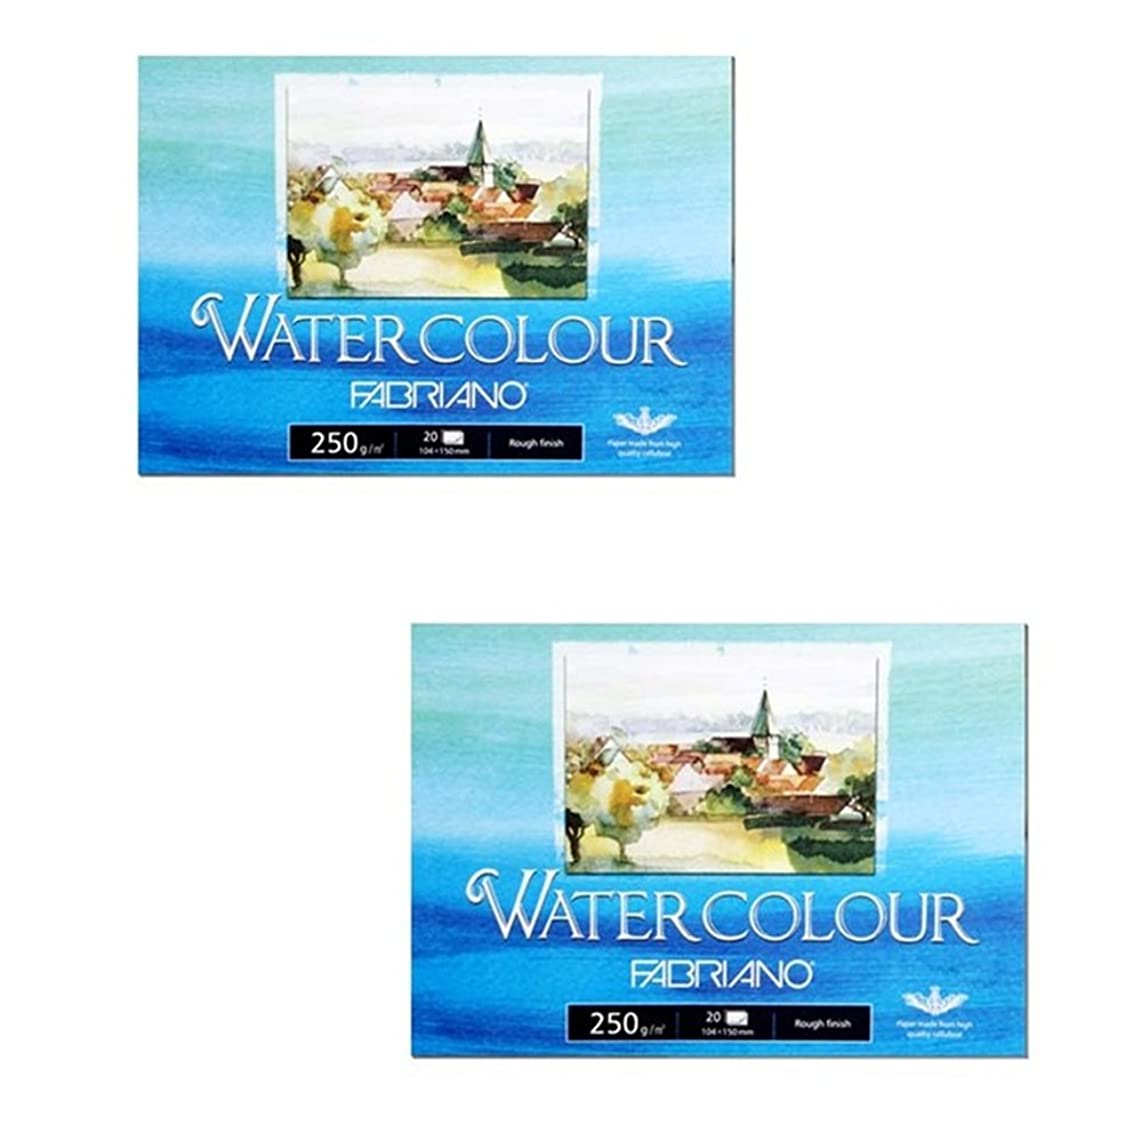 Fabriano Watercolor Paper Pads, Postcards Pad Rough Finish, 250gsm 20 SheetsX2 Pack bx442727986144